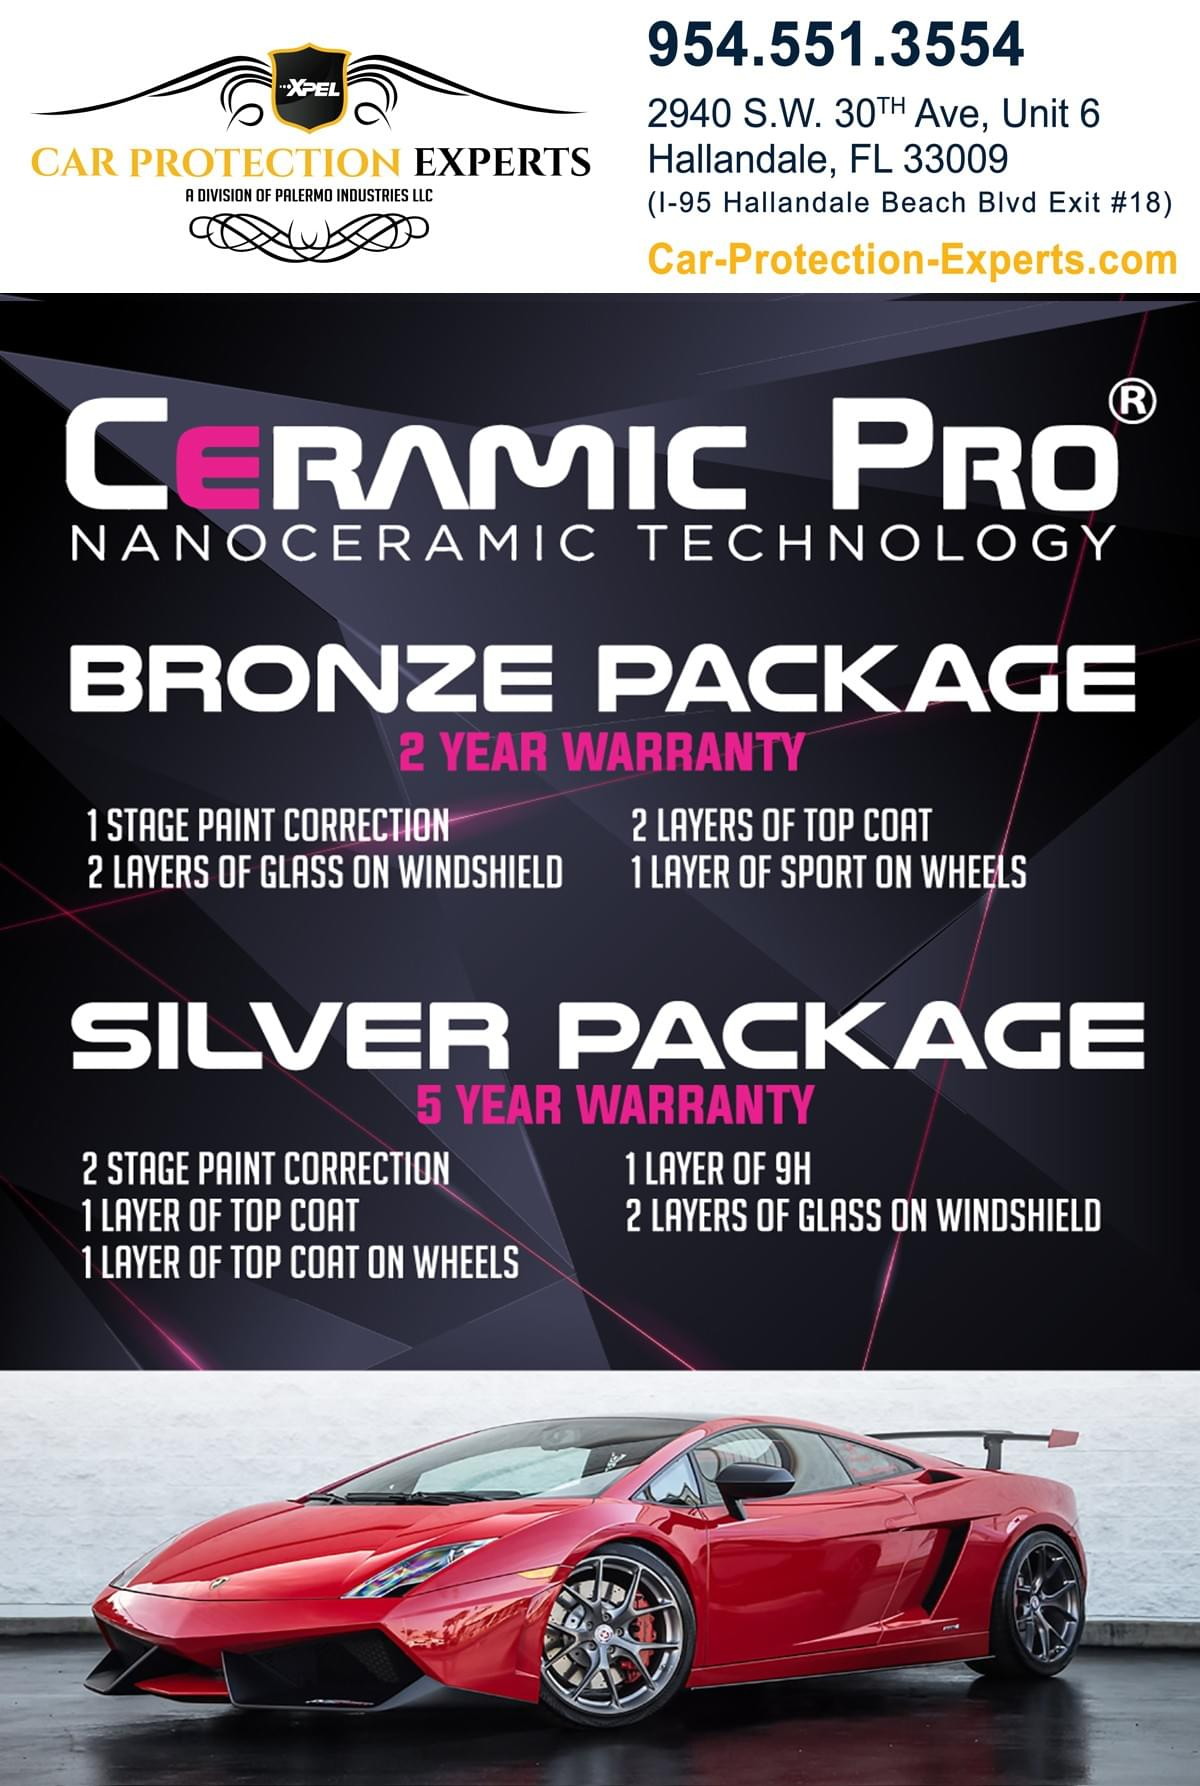 Ceramic pro car detailing in Miami Dade County, ceramic pro car dealer in Broward, ceramic pro car detailing for Hallandale FL, ceramic pro car detailing near Fort Lauderdale, ceramic pro car detailing near Aventura FL, ceramic pro car detailing for Sunny Isles Beach, ceramic pro car detailing Weston FL, ceramic pro car detailing in Fort Lauderdale, ceramic pro car detailing Deerfield Beach FL, ceramic pro car detailing Boca Raton,ceramic pro car detailing Pompano Beach, ceramic pro car detailing Lauderhill, ceramic pro car detailing Sunrise FL, ceramic pro car detailing Bal harbour, ceramic pro car detailing Pembroke Pines, ceramic pro car detailing Davie, ceramic pro car detailing Dania Beach, ceramic pro car detailing Plantation, ceramic pro car detailing Miramar, ceramic pro car detailing Pembroke Pines, ceramic pro car detailing Parkland, Ceramic Pro Certified Installers, Ceramic pro price, Ceramic Pro 9H, Ceramic Pro near me, Ceramic Pro cost, Ceramic Pro dealer and we have Ceramic pro reviews.